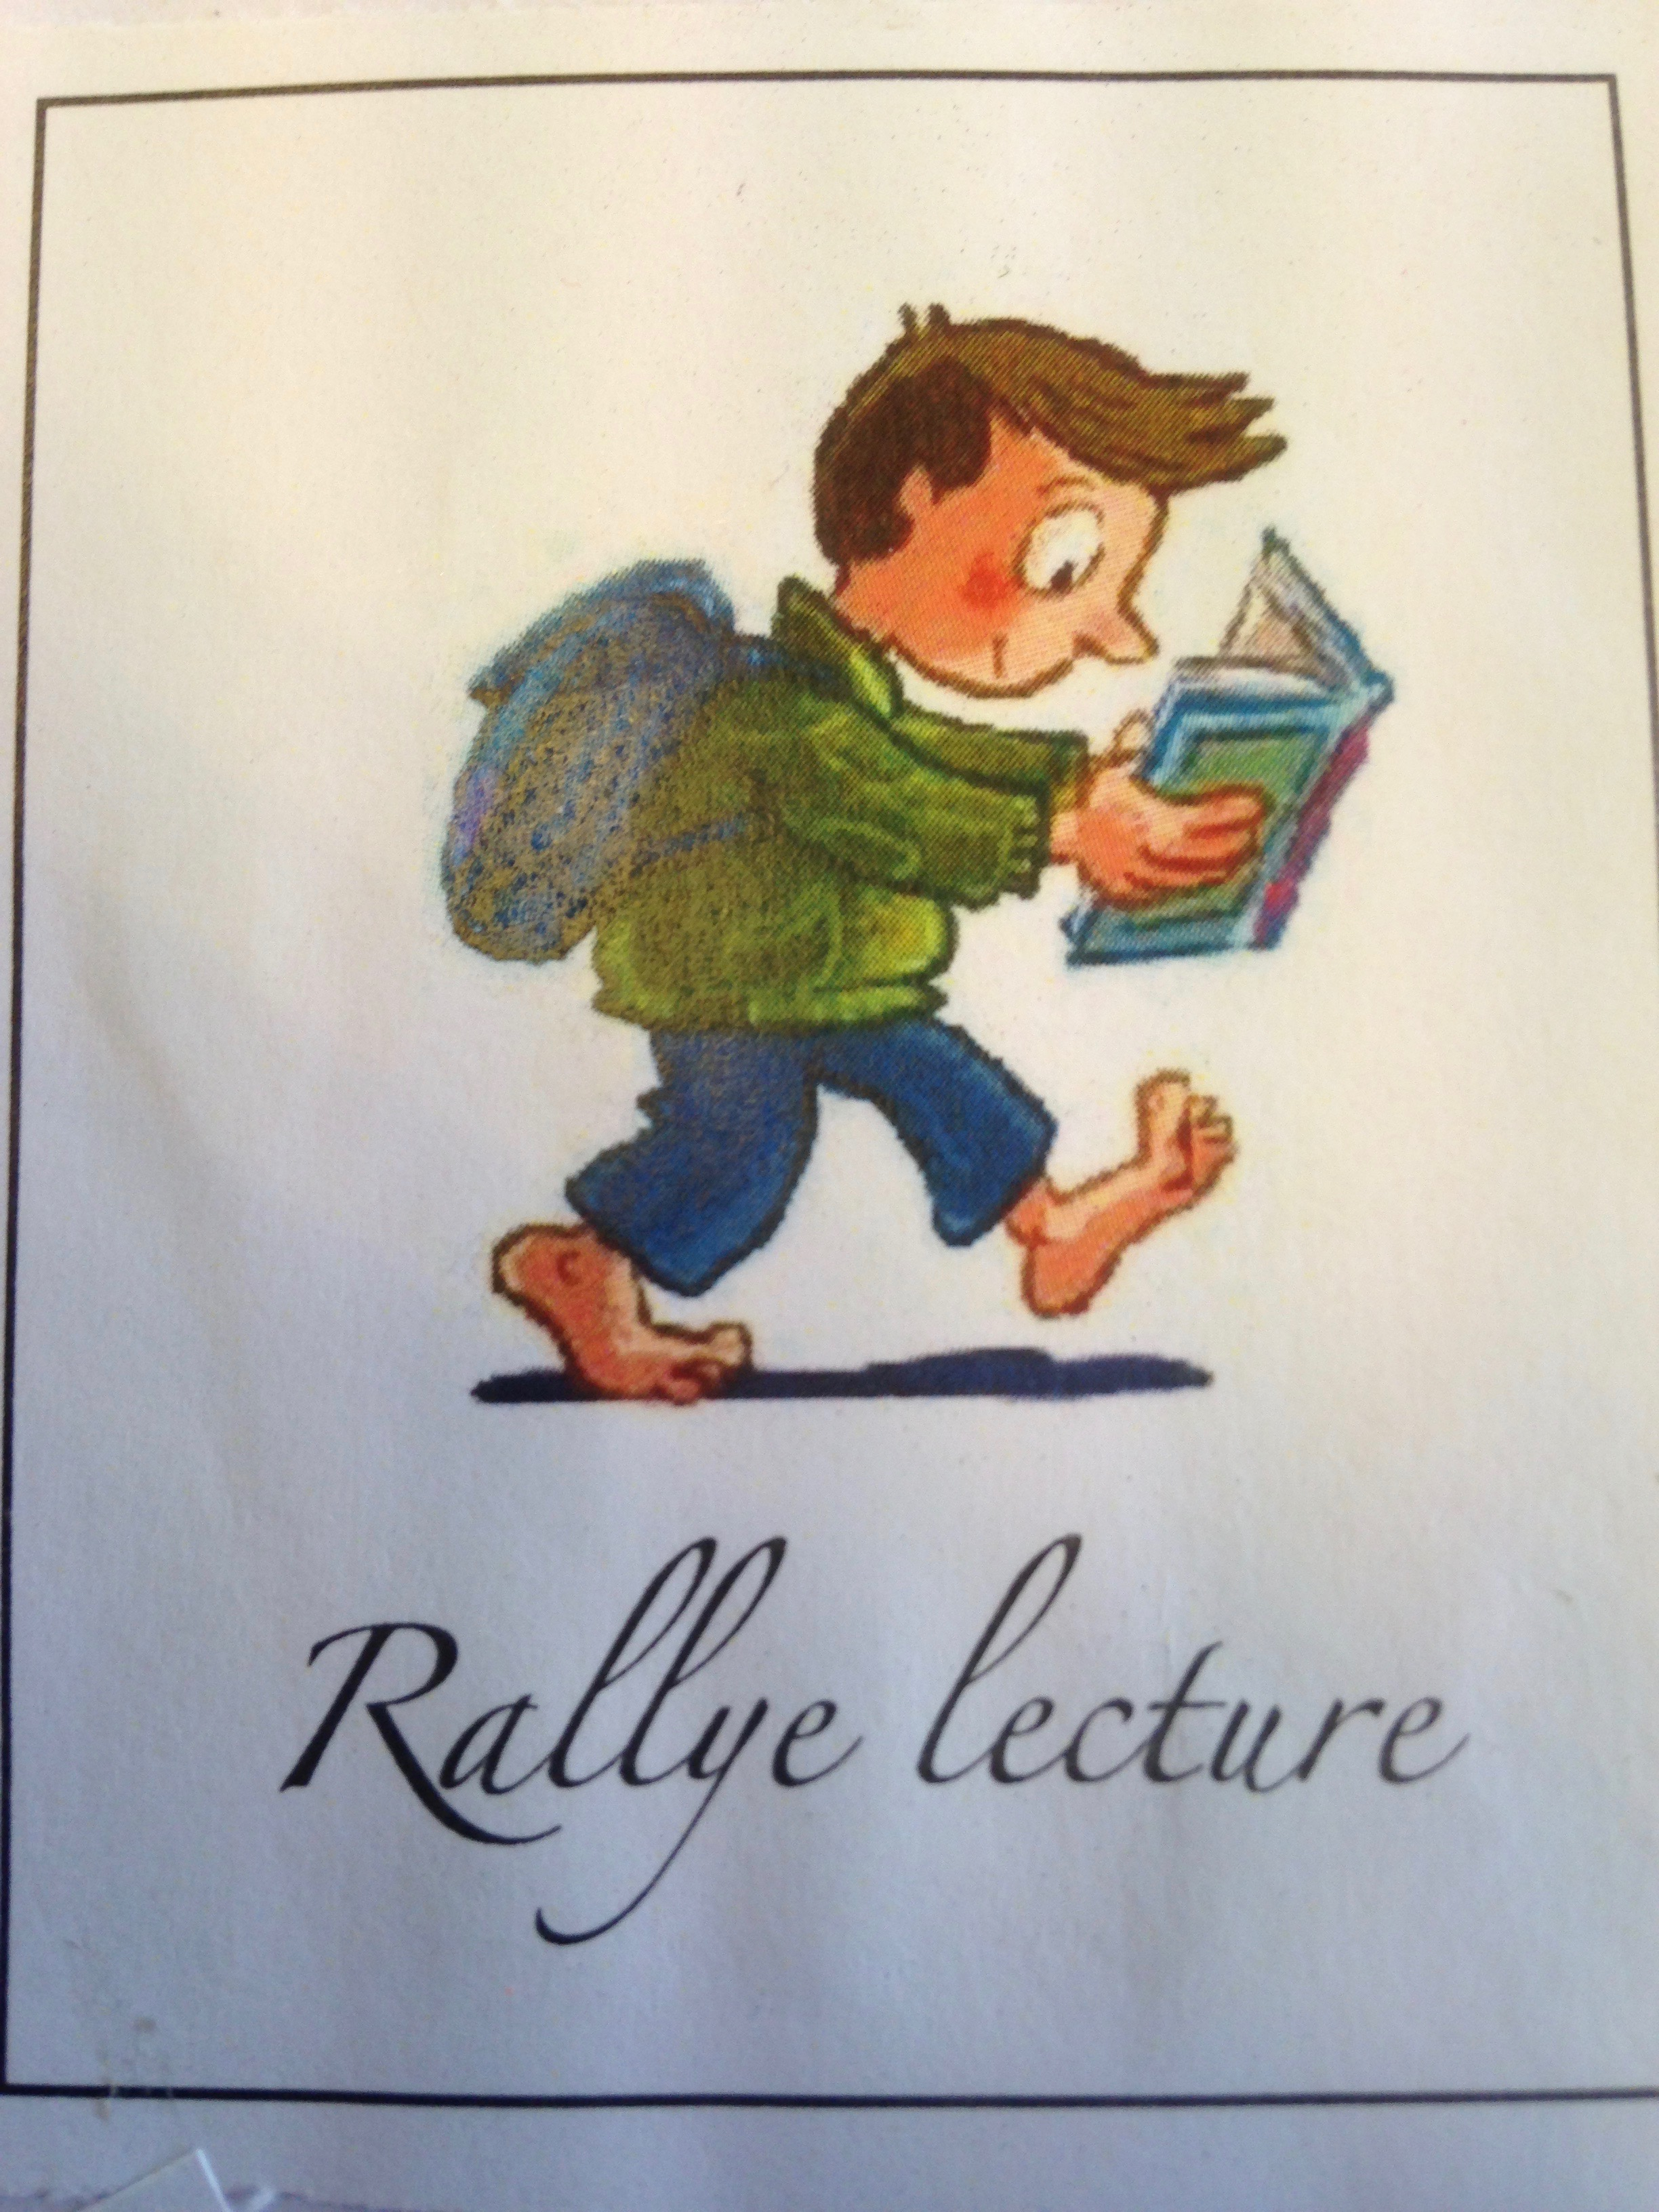 Rallye lecture